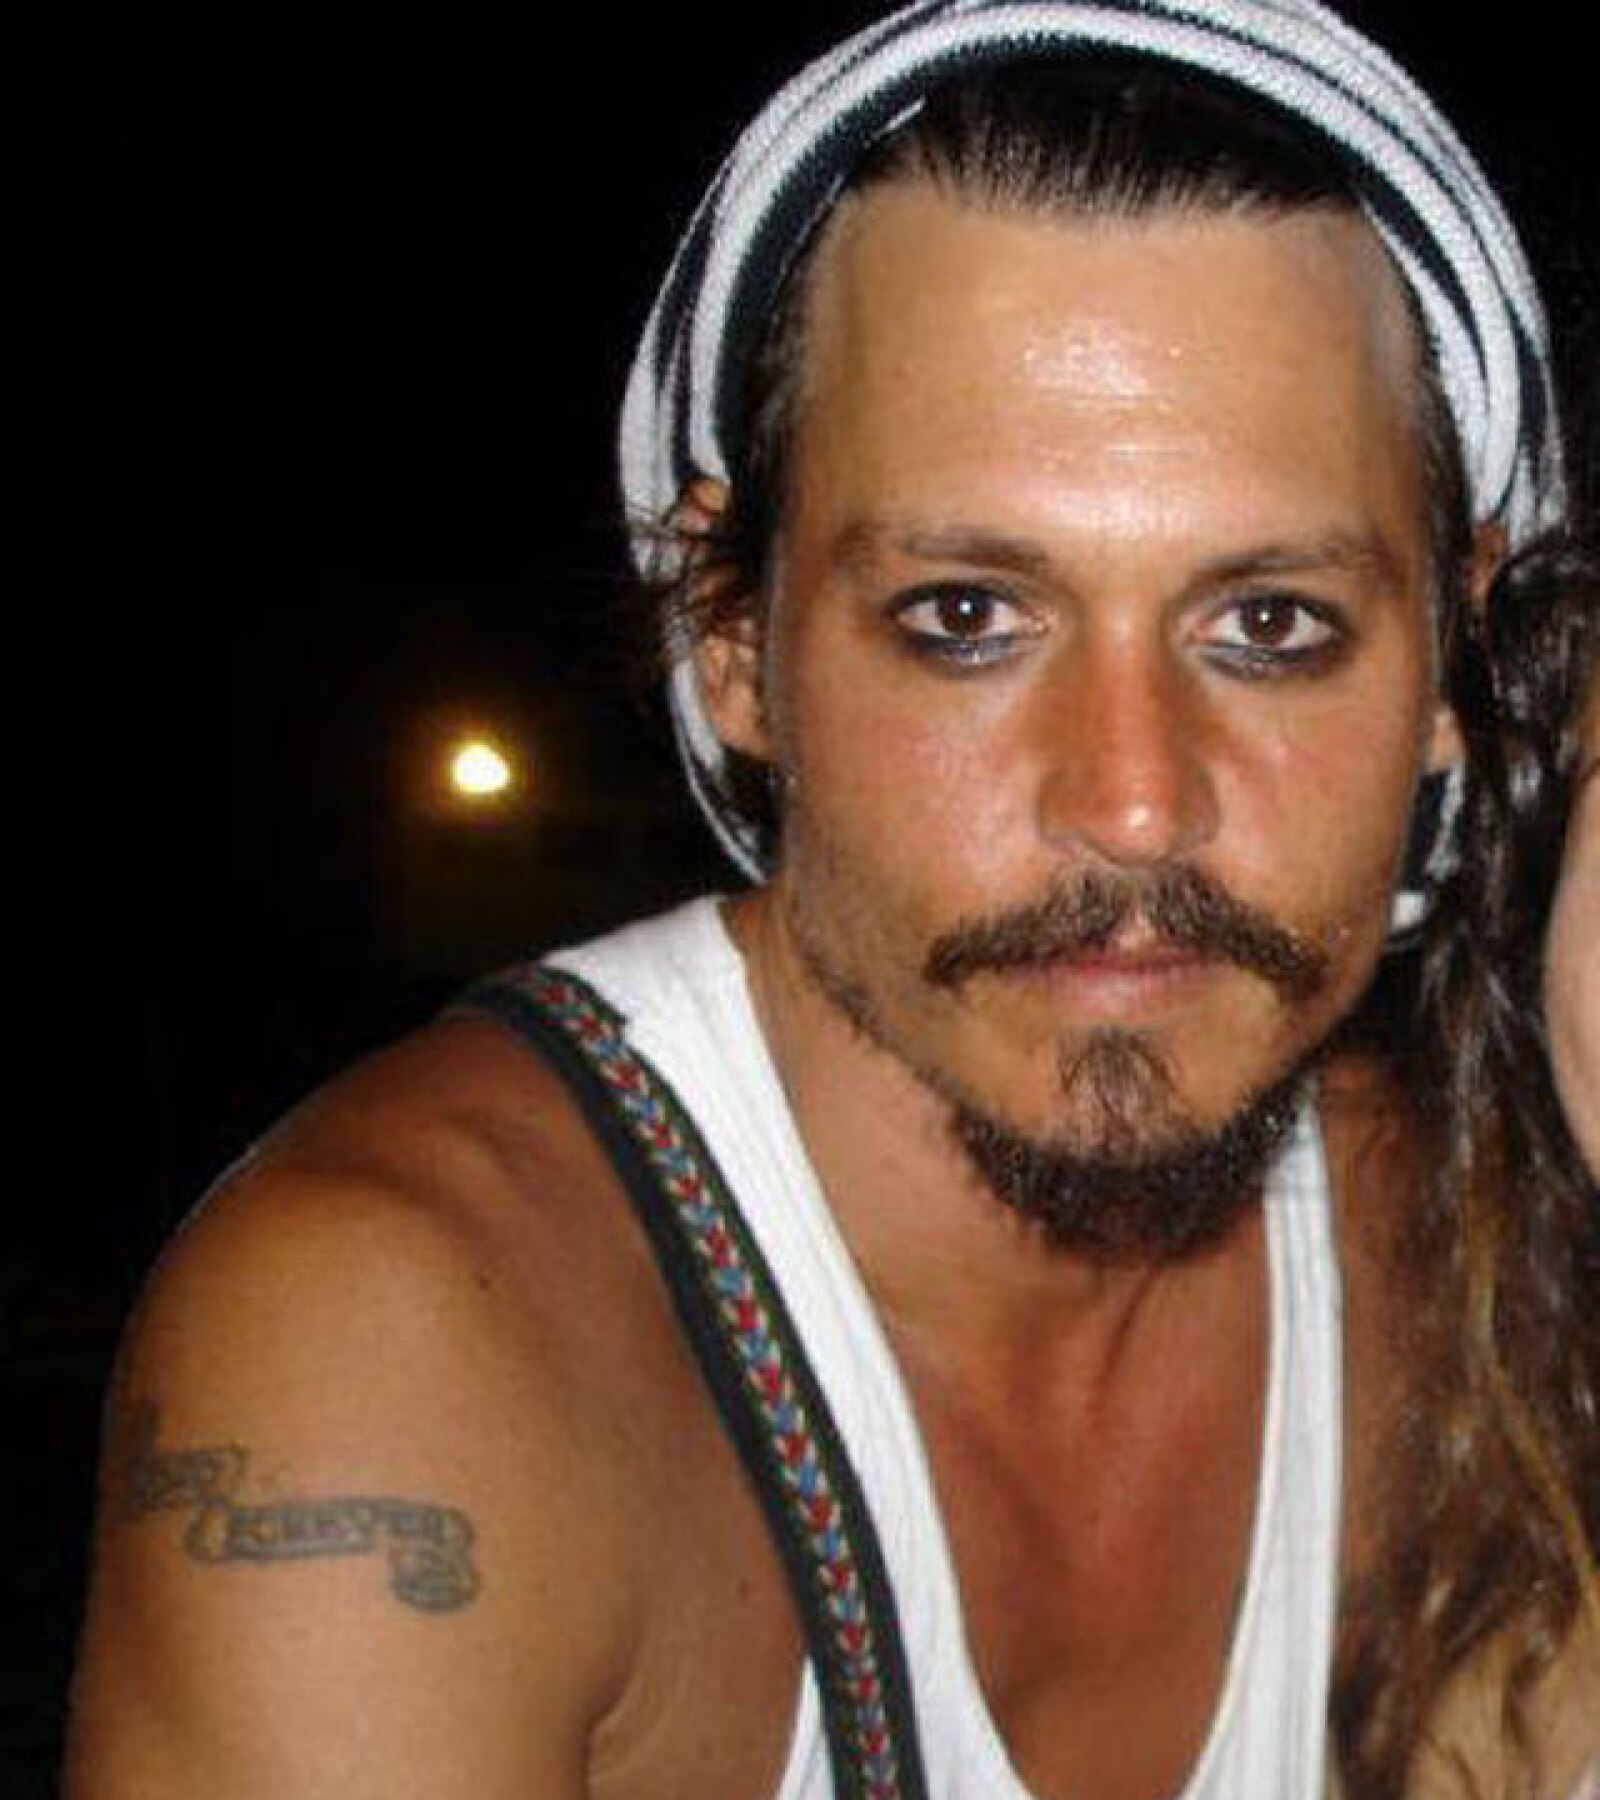 Johnny Depp no sólo usa maquillaje en el set de `Piratas del Caribe´.